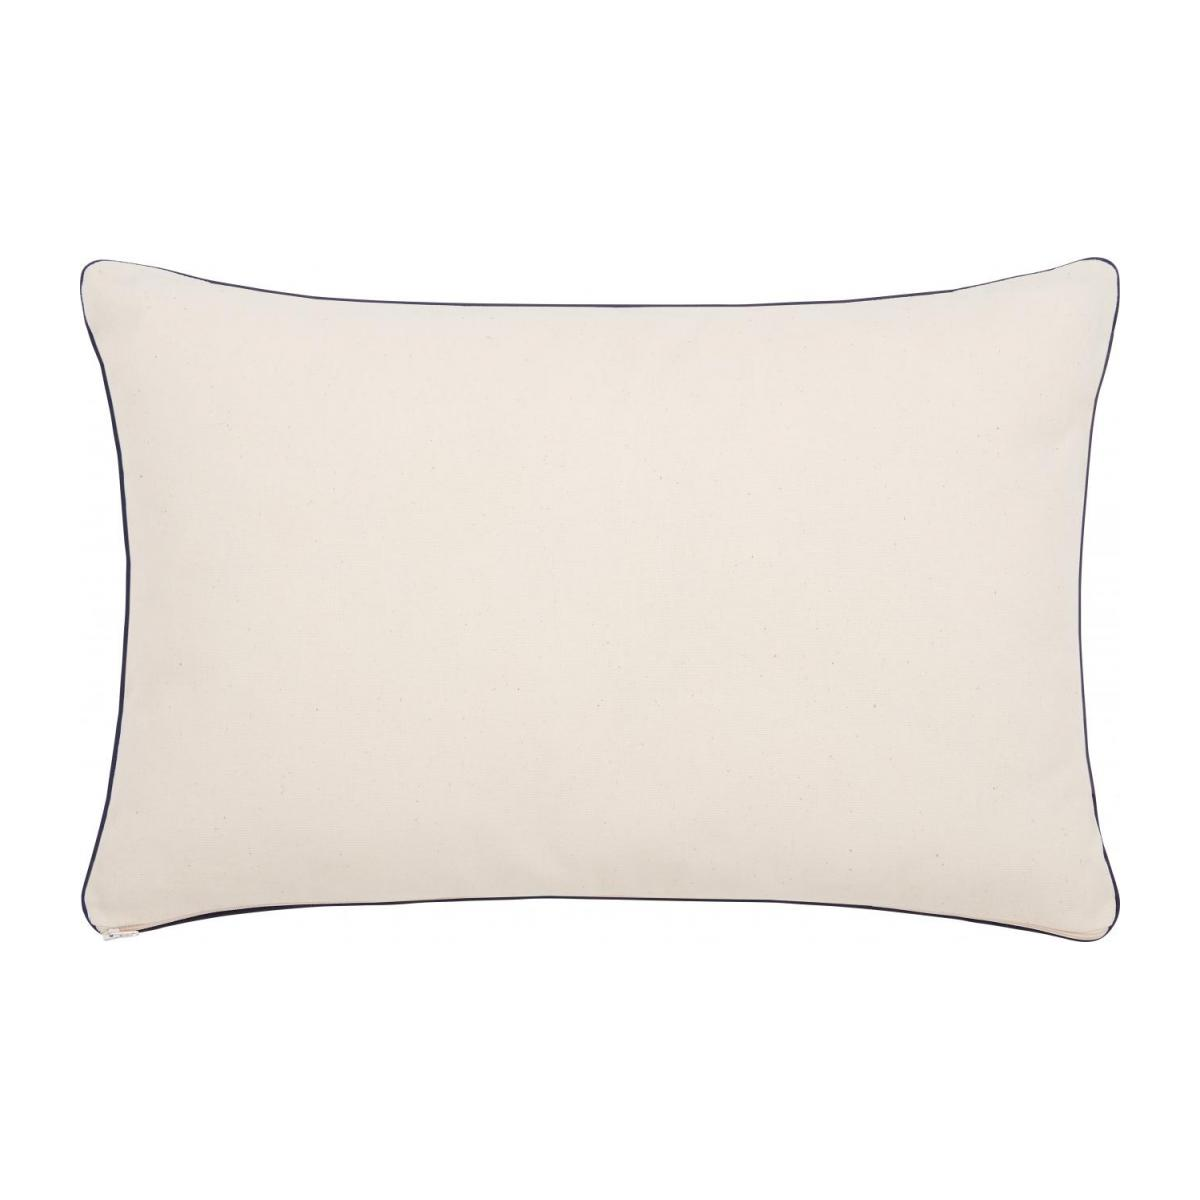 Printed cushion made of cotton 40x60cm - Design by Janine Rewell n°3